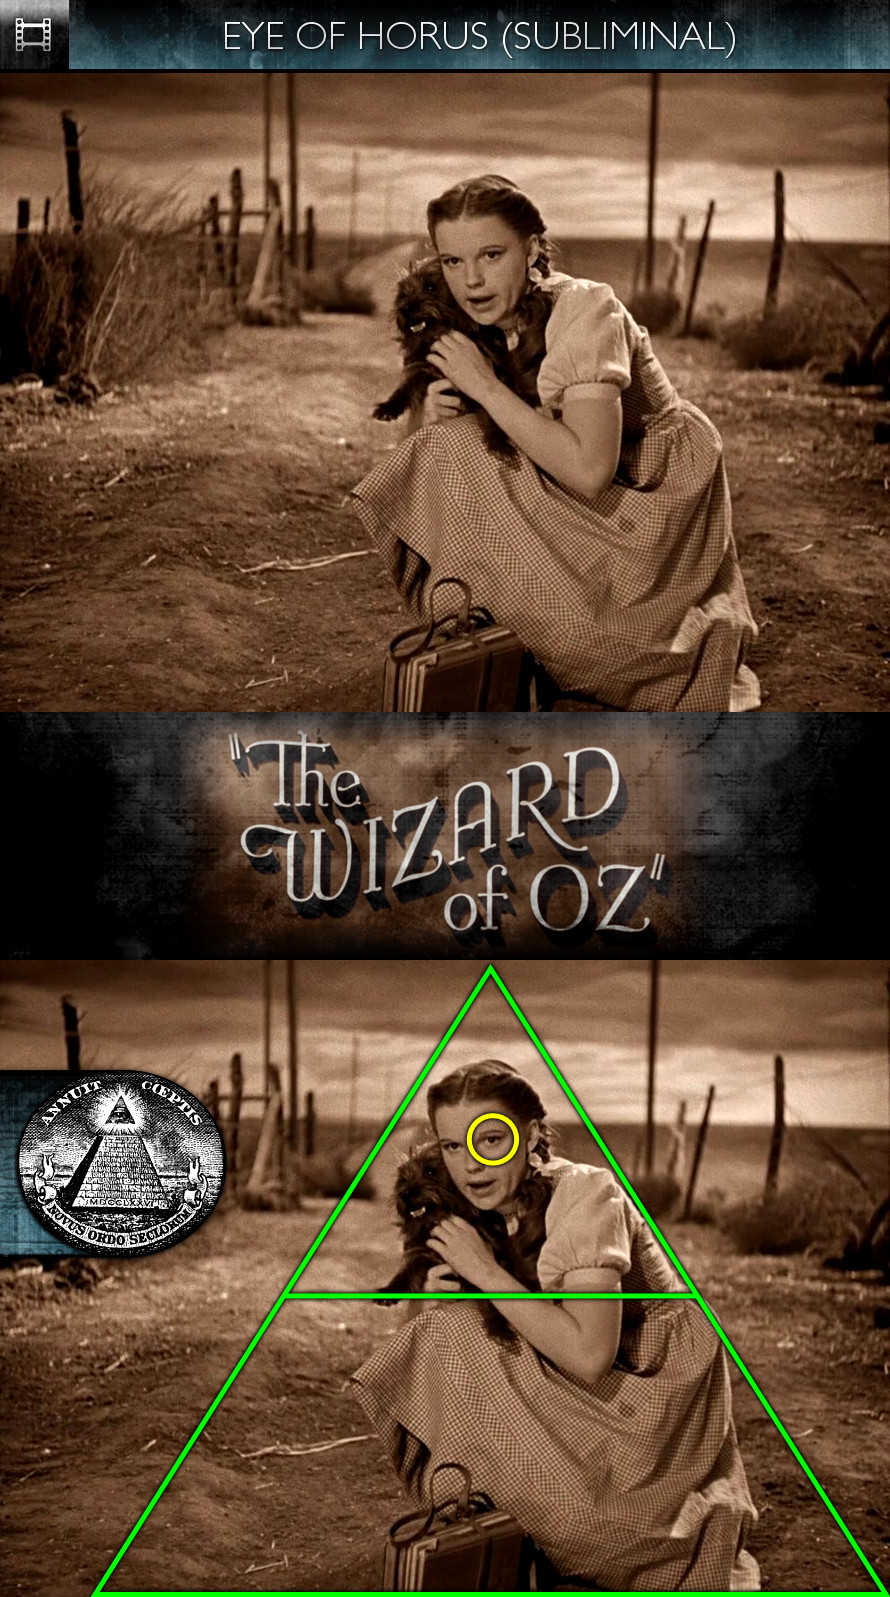 The Wizard of Oz (1939) - Eye of Horus - Subliminal